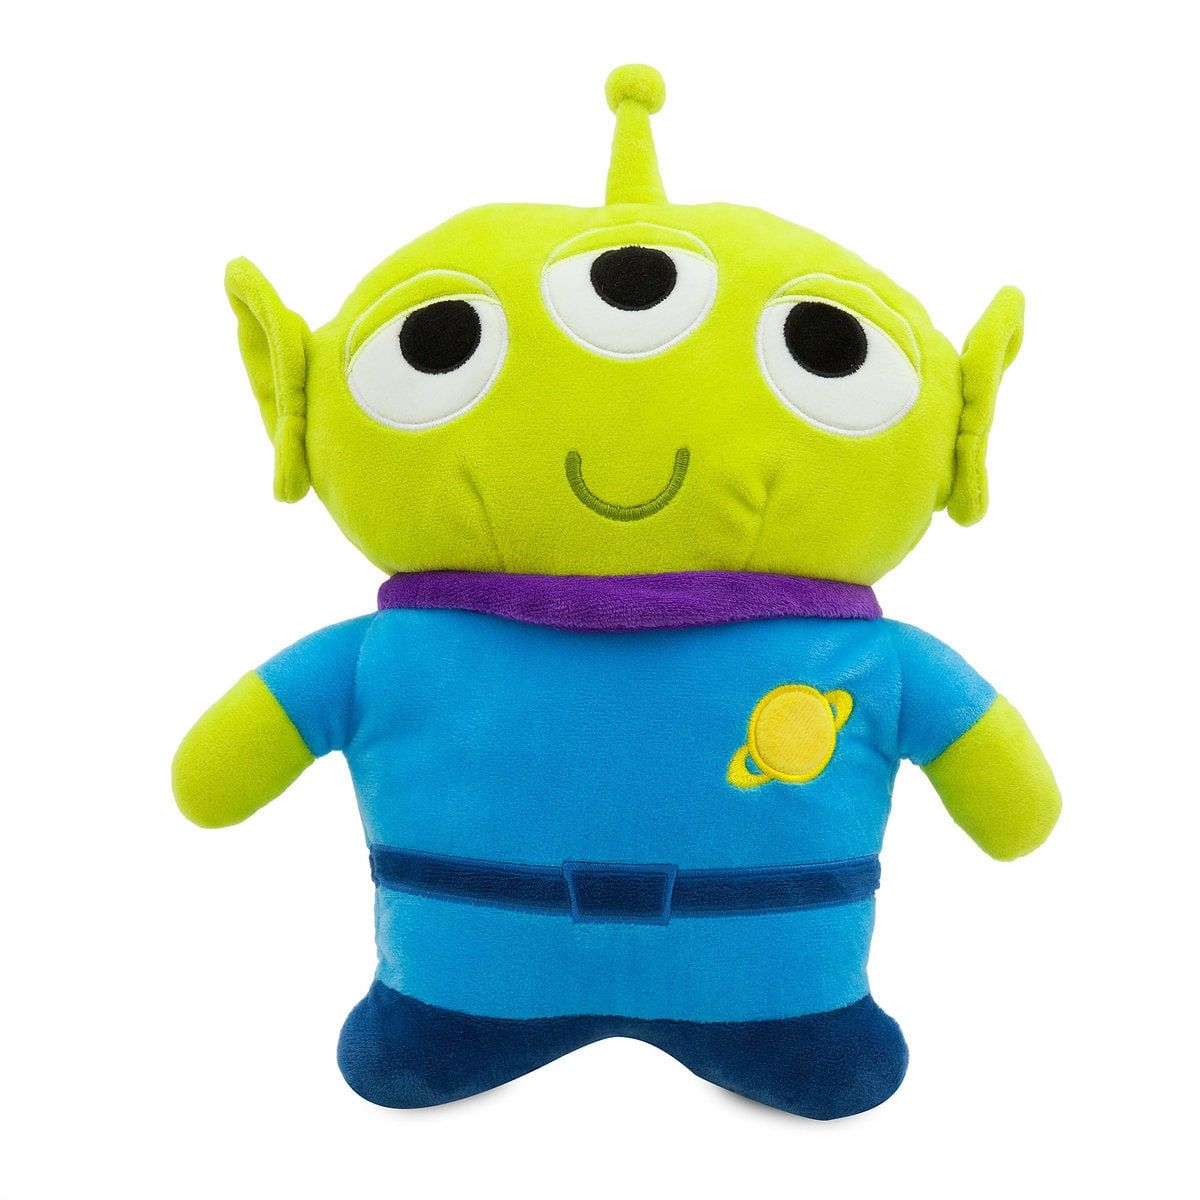 Alien Glowing Plush Toy Story Small Soft Toys Toy Story Alien Alien Plush